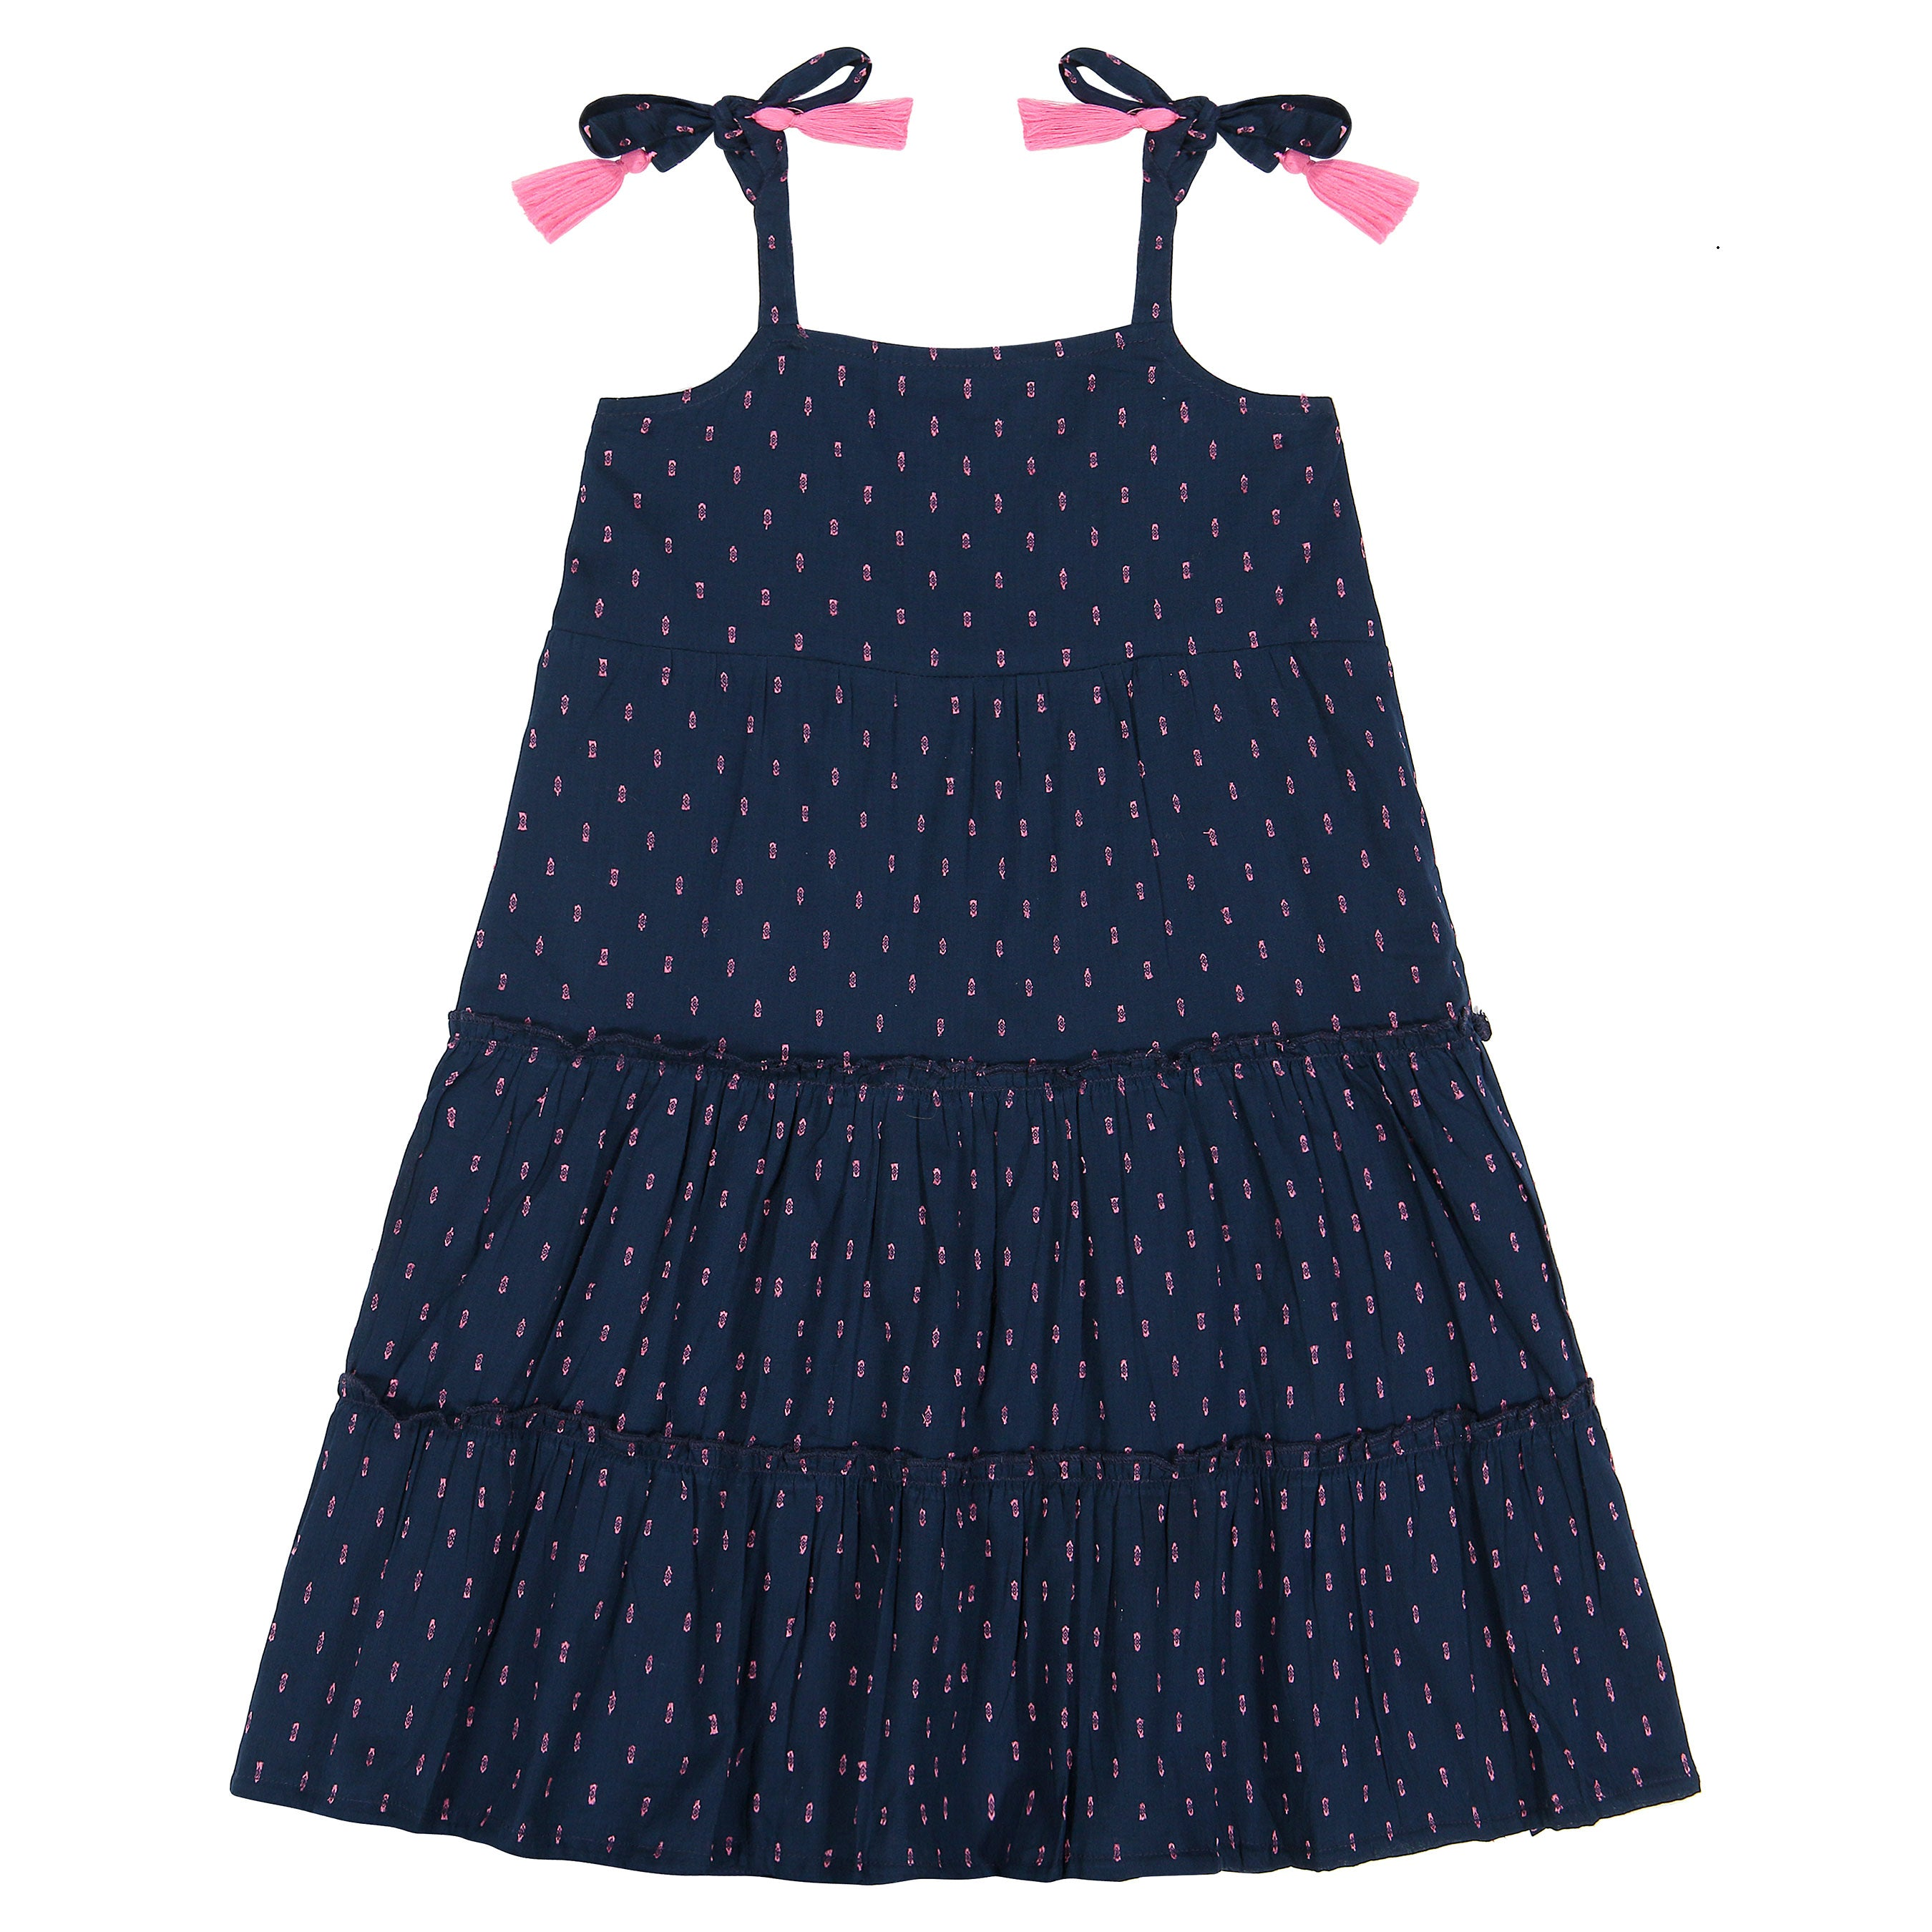 Bella Girls Shoulder Tie Sundress Navy Swiss Dot